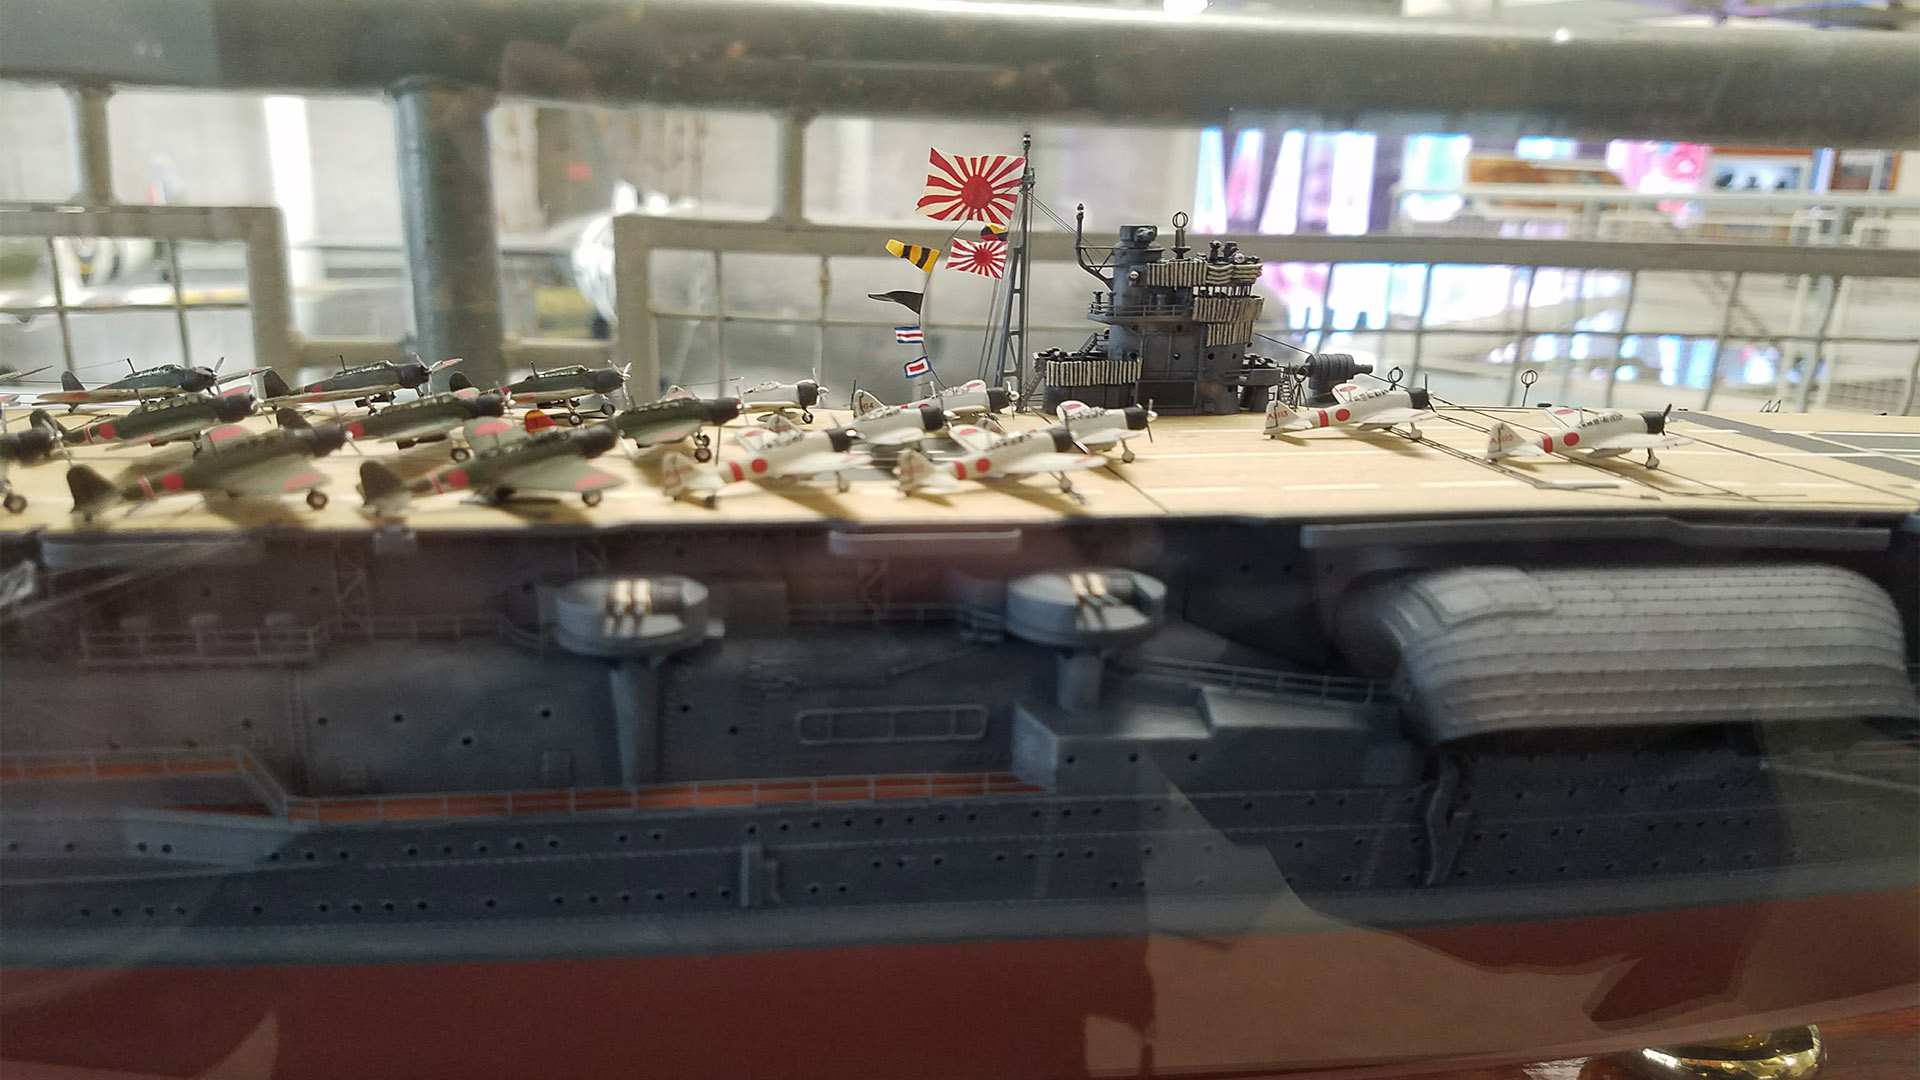 PHOTOS: Model Pearl Harbor Japanese aircraft carriers at the Nat'l WWII Museum